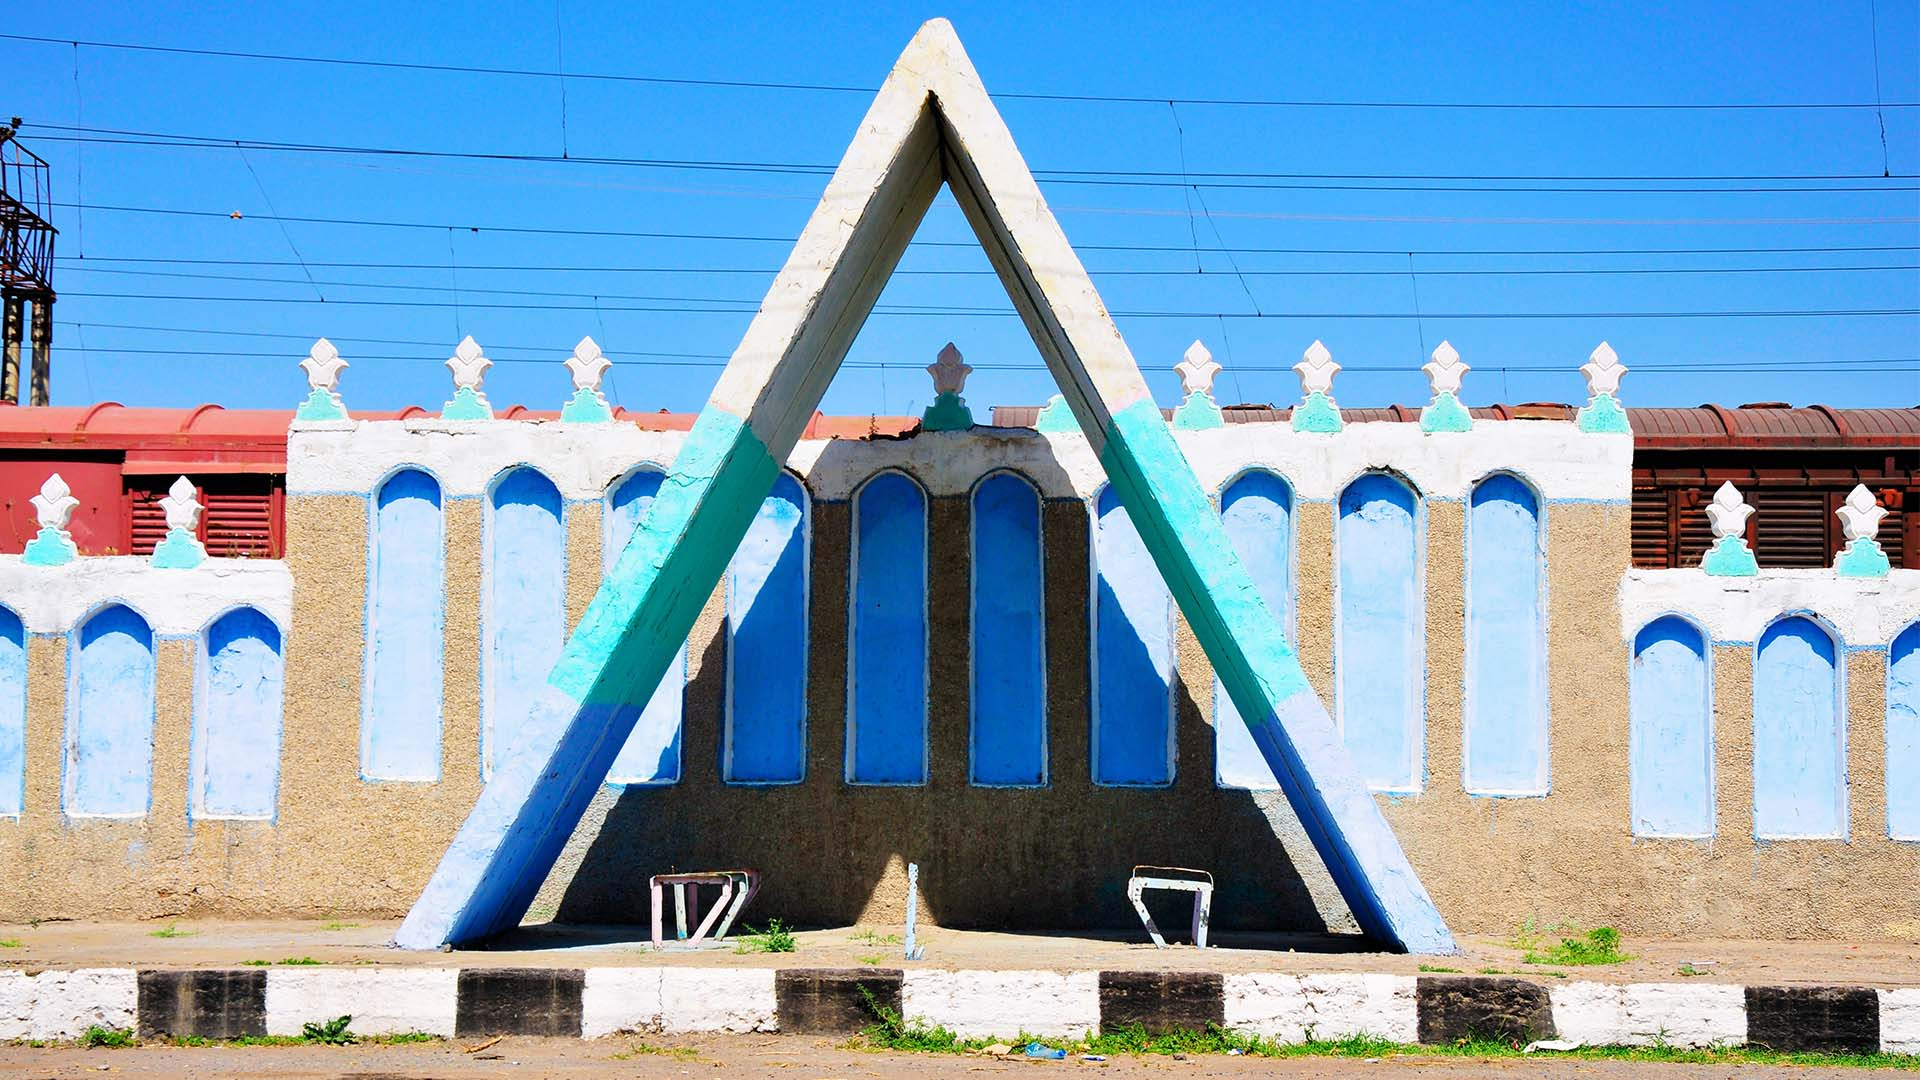 A bus stop with a triangular cover in Uzbekistan